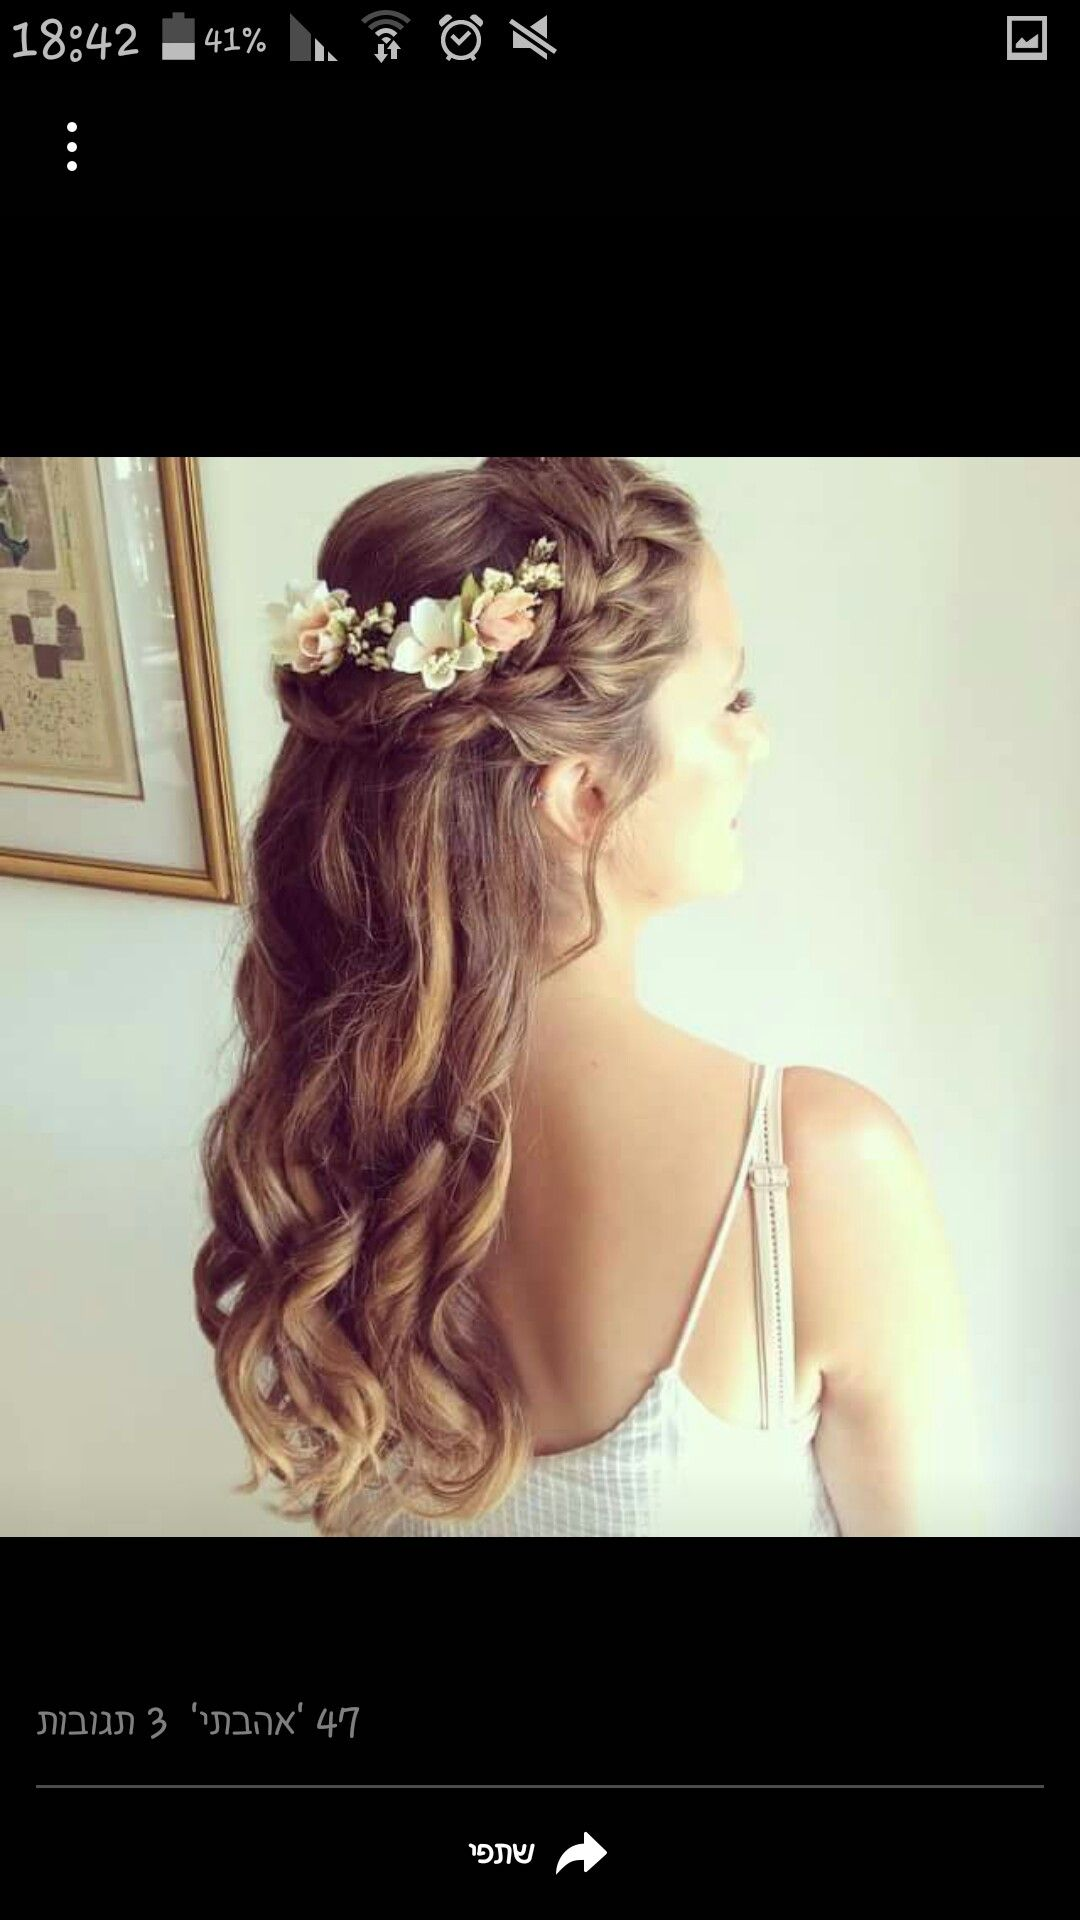 Pin by samantha frost on wedding pinterest hair style weddings